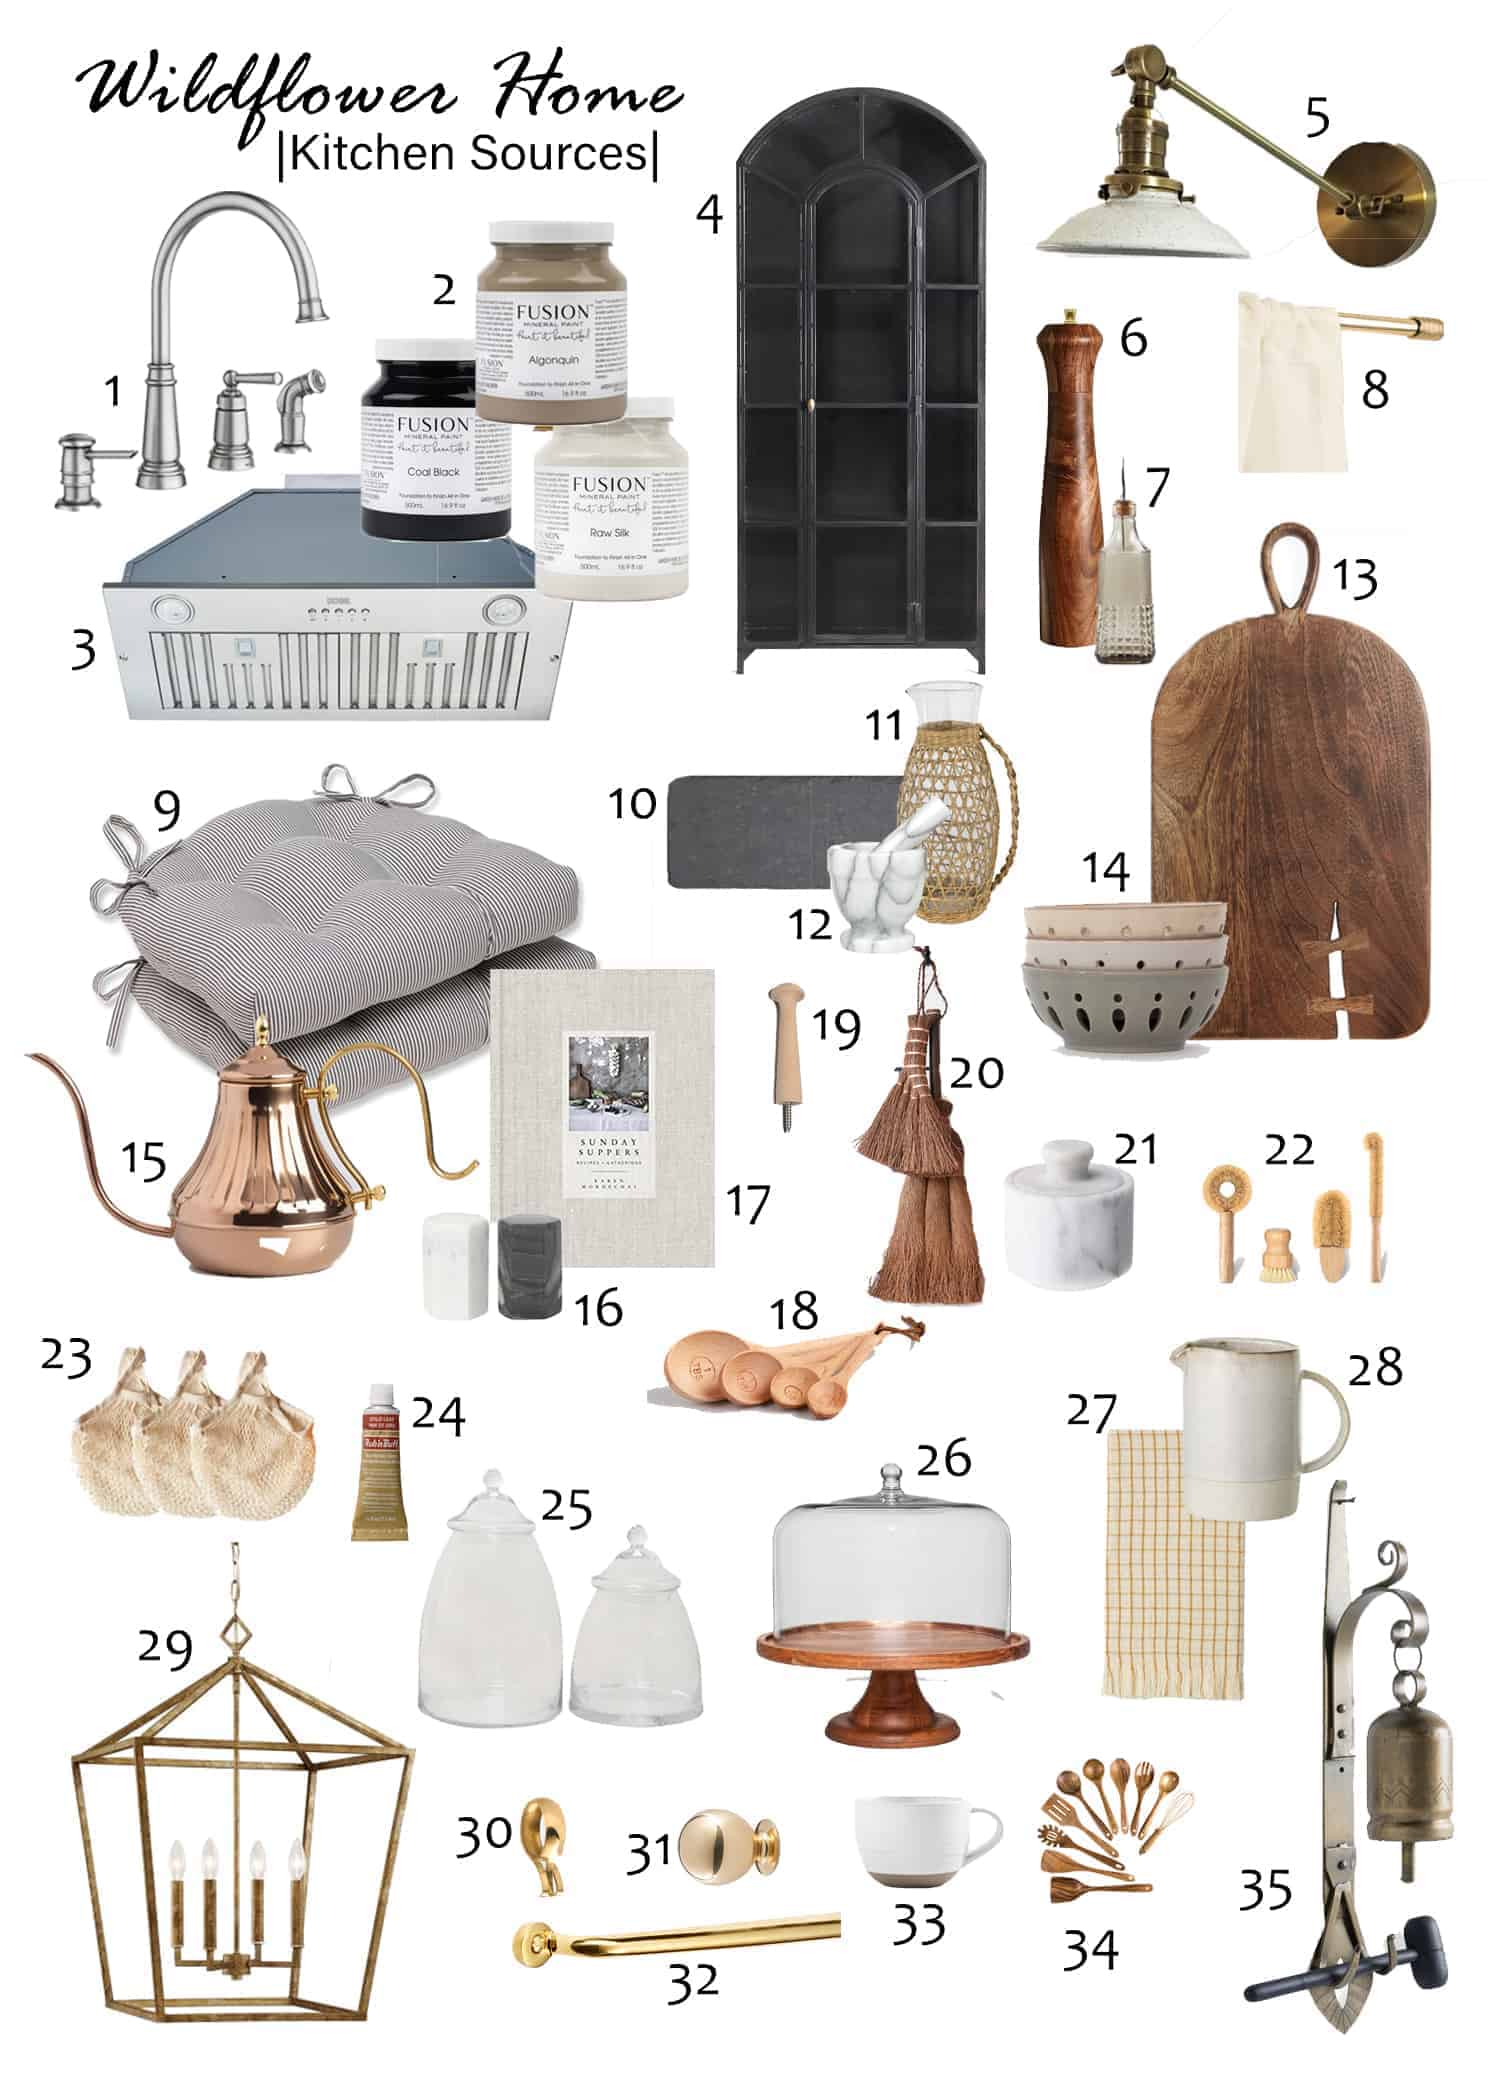 mood board of kitchen sources